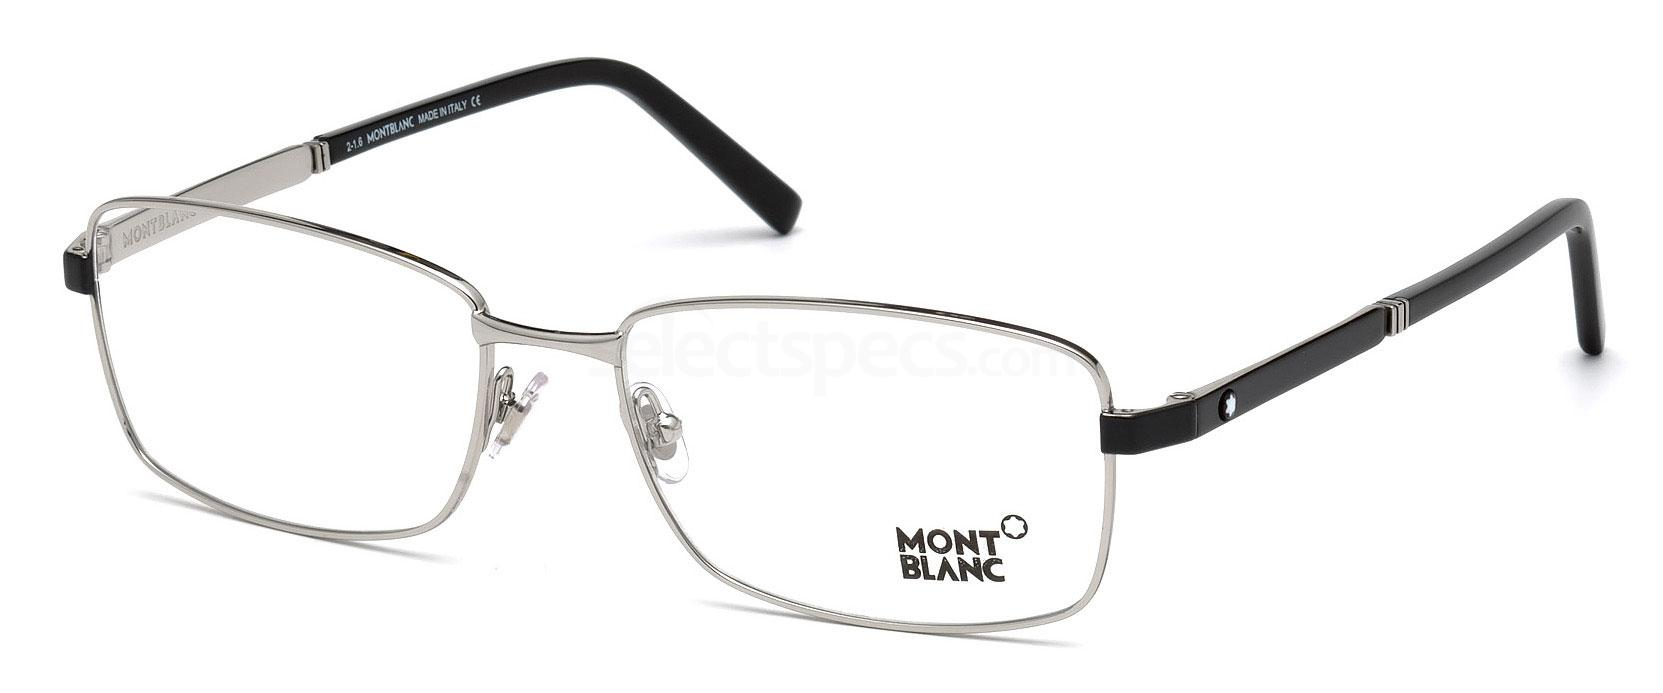 016 MB0633 Glasses, Mont Blanc